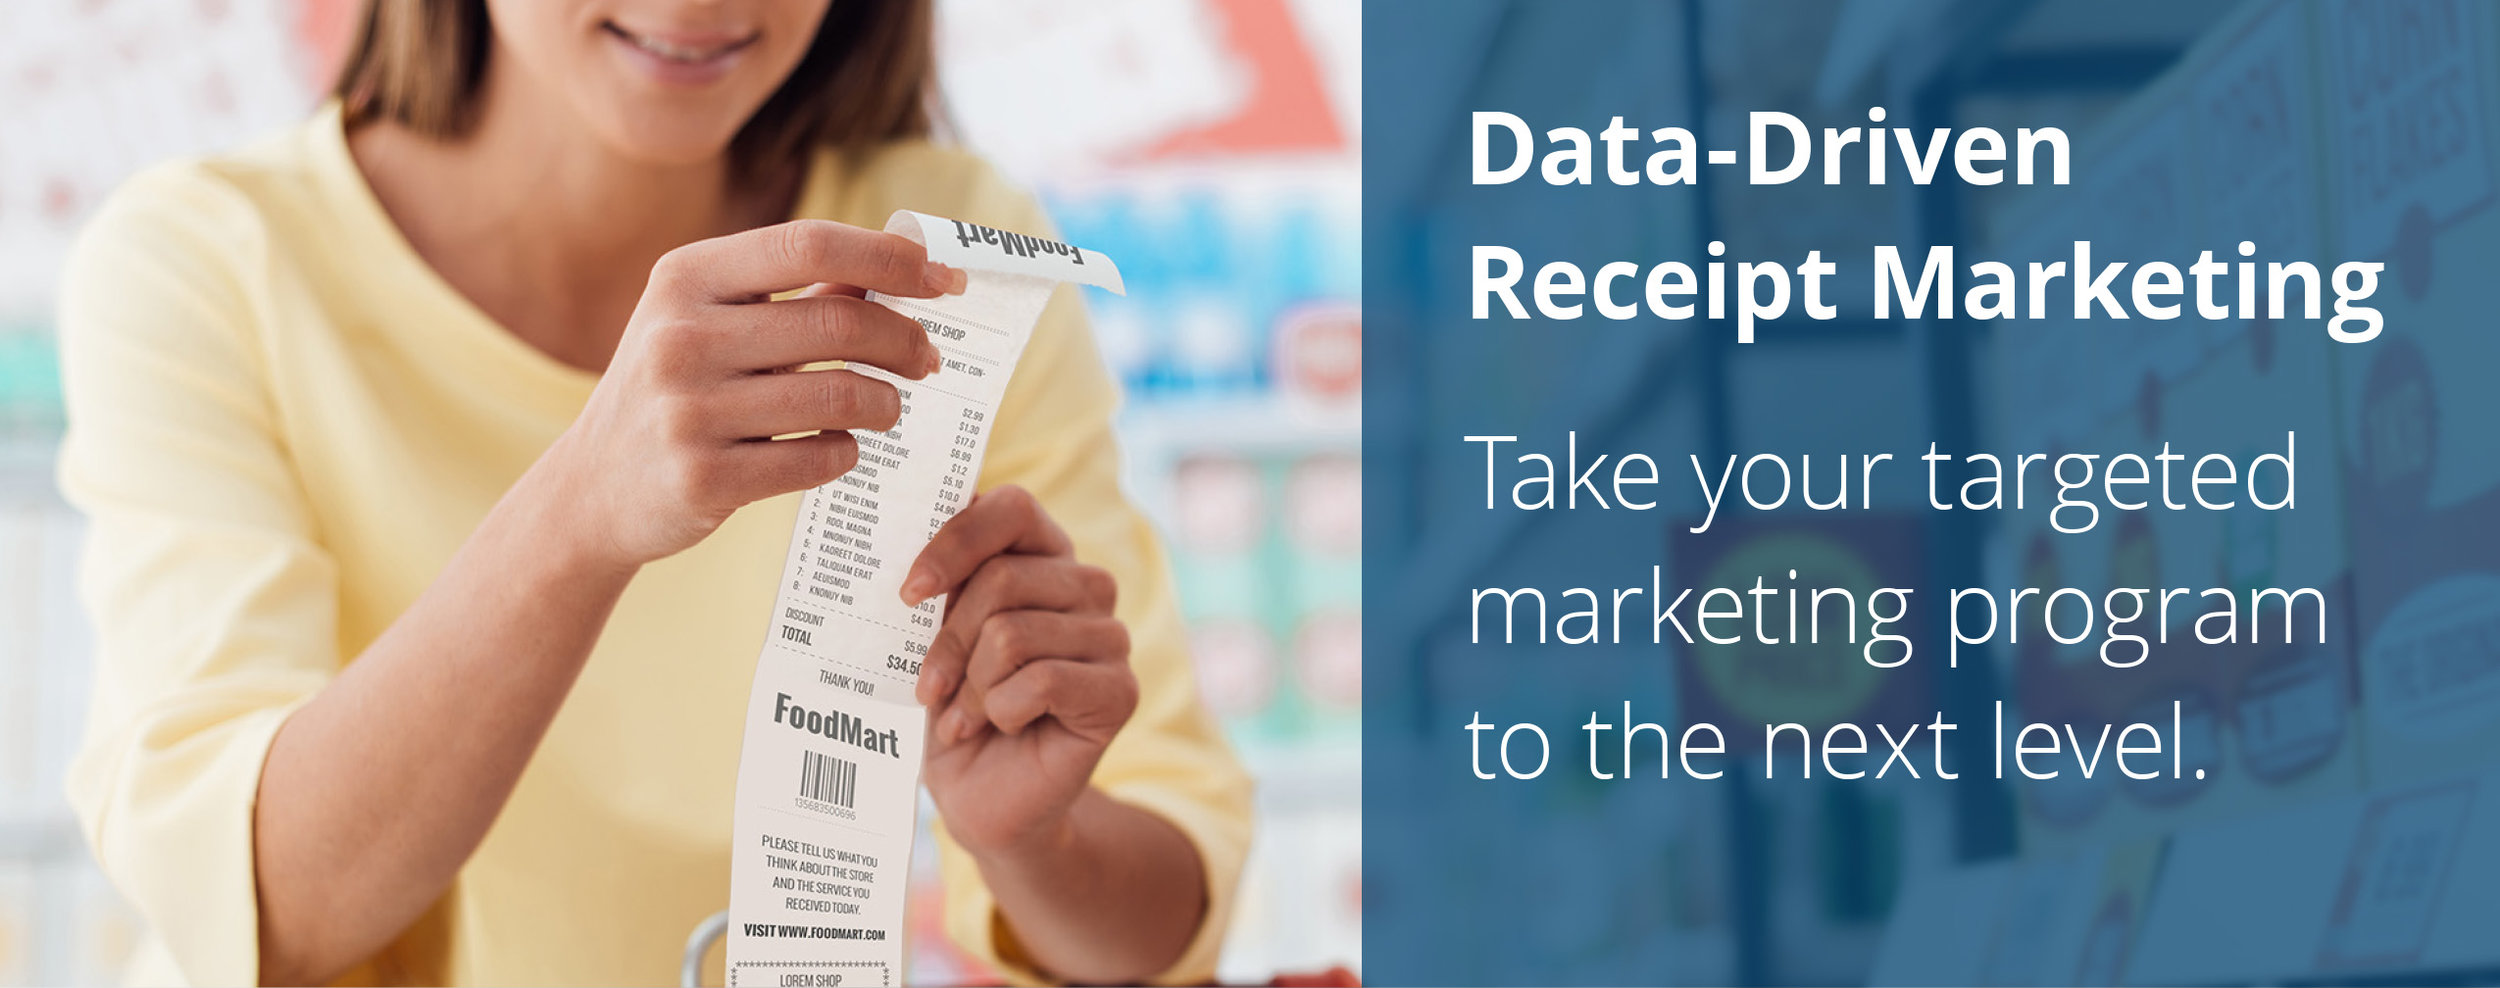 Data-Driven Receipt Marketing